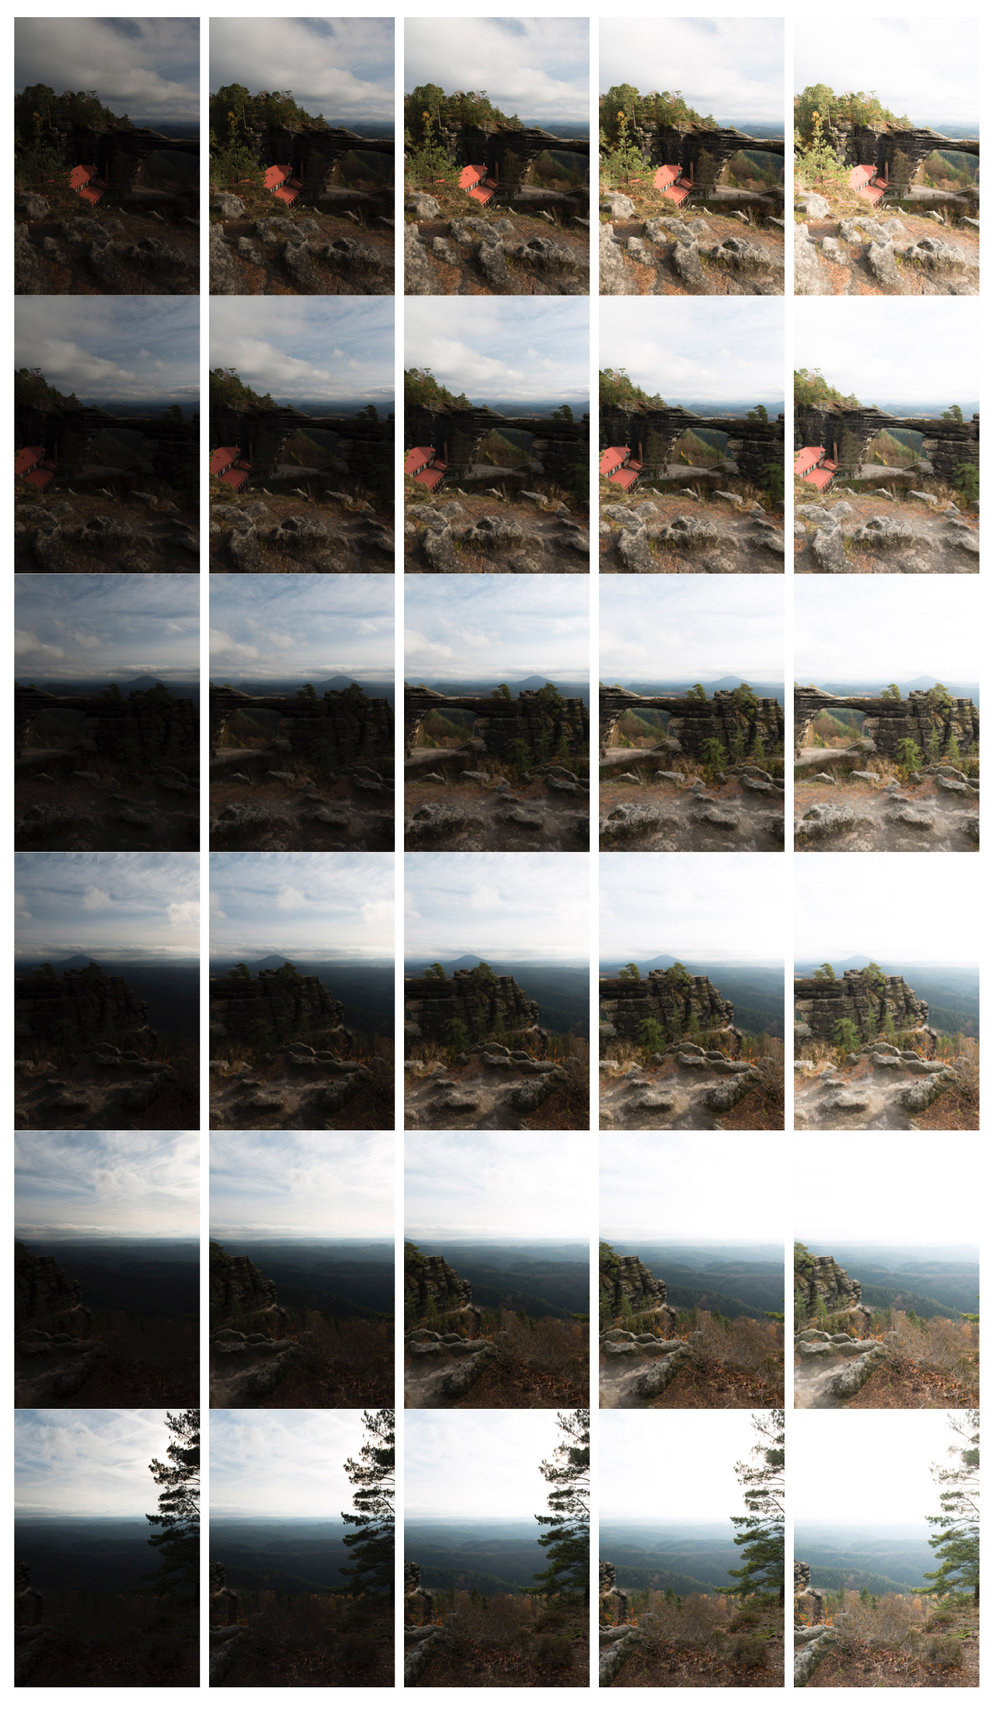 30 photos takes for postprocess stitching into HDR and panorama